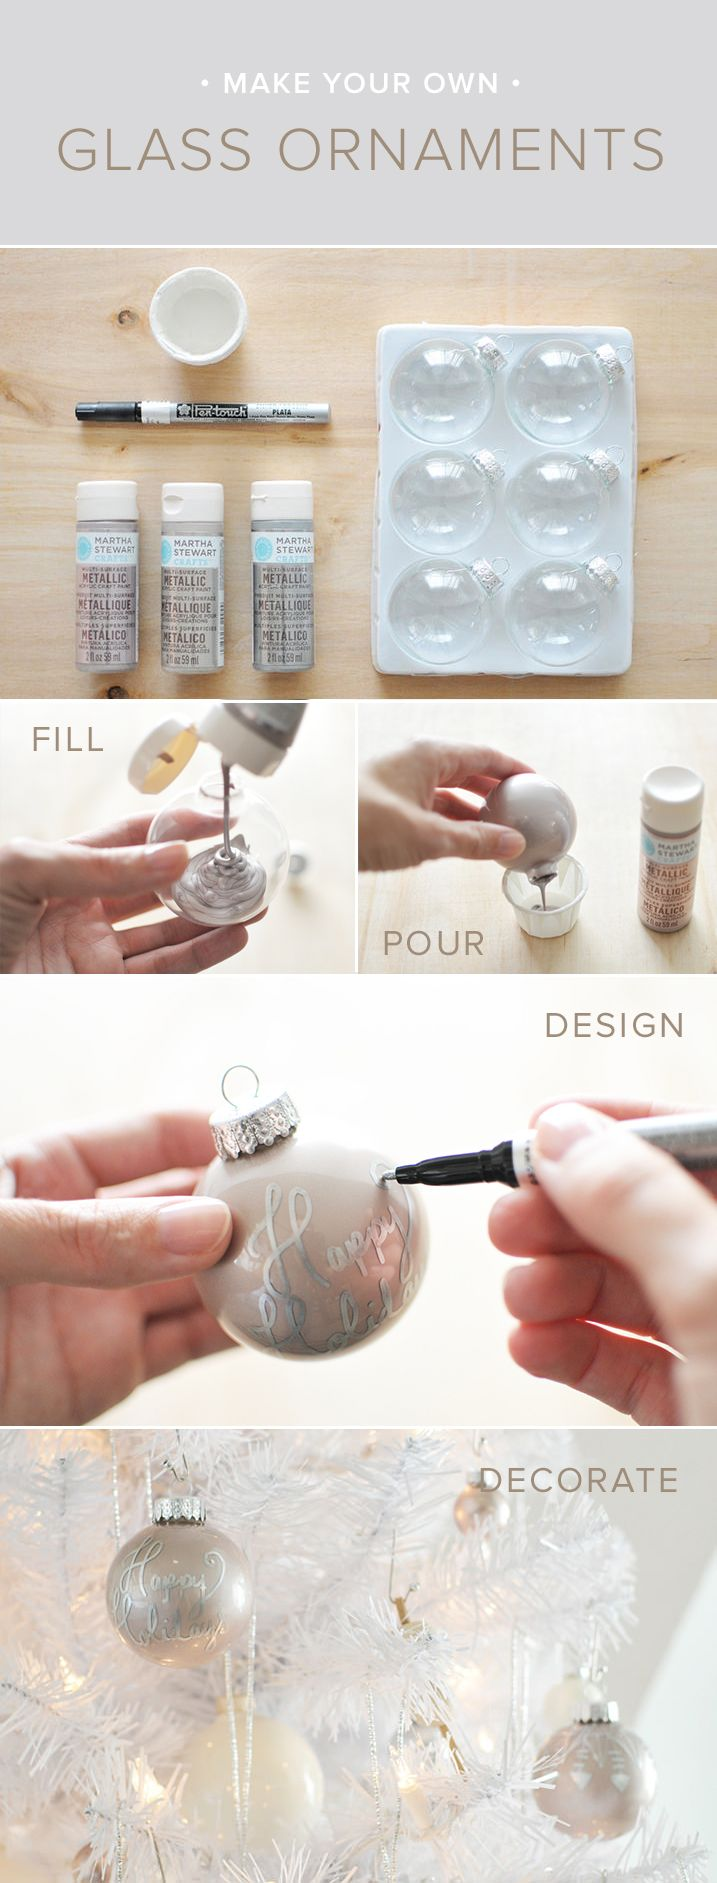 DIY ornaments, yes please!